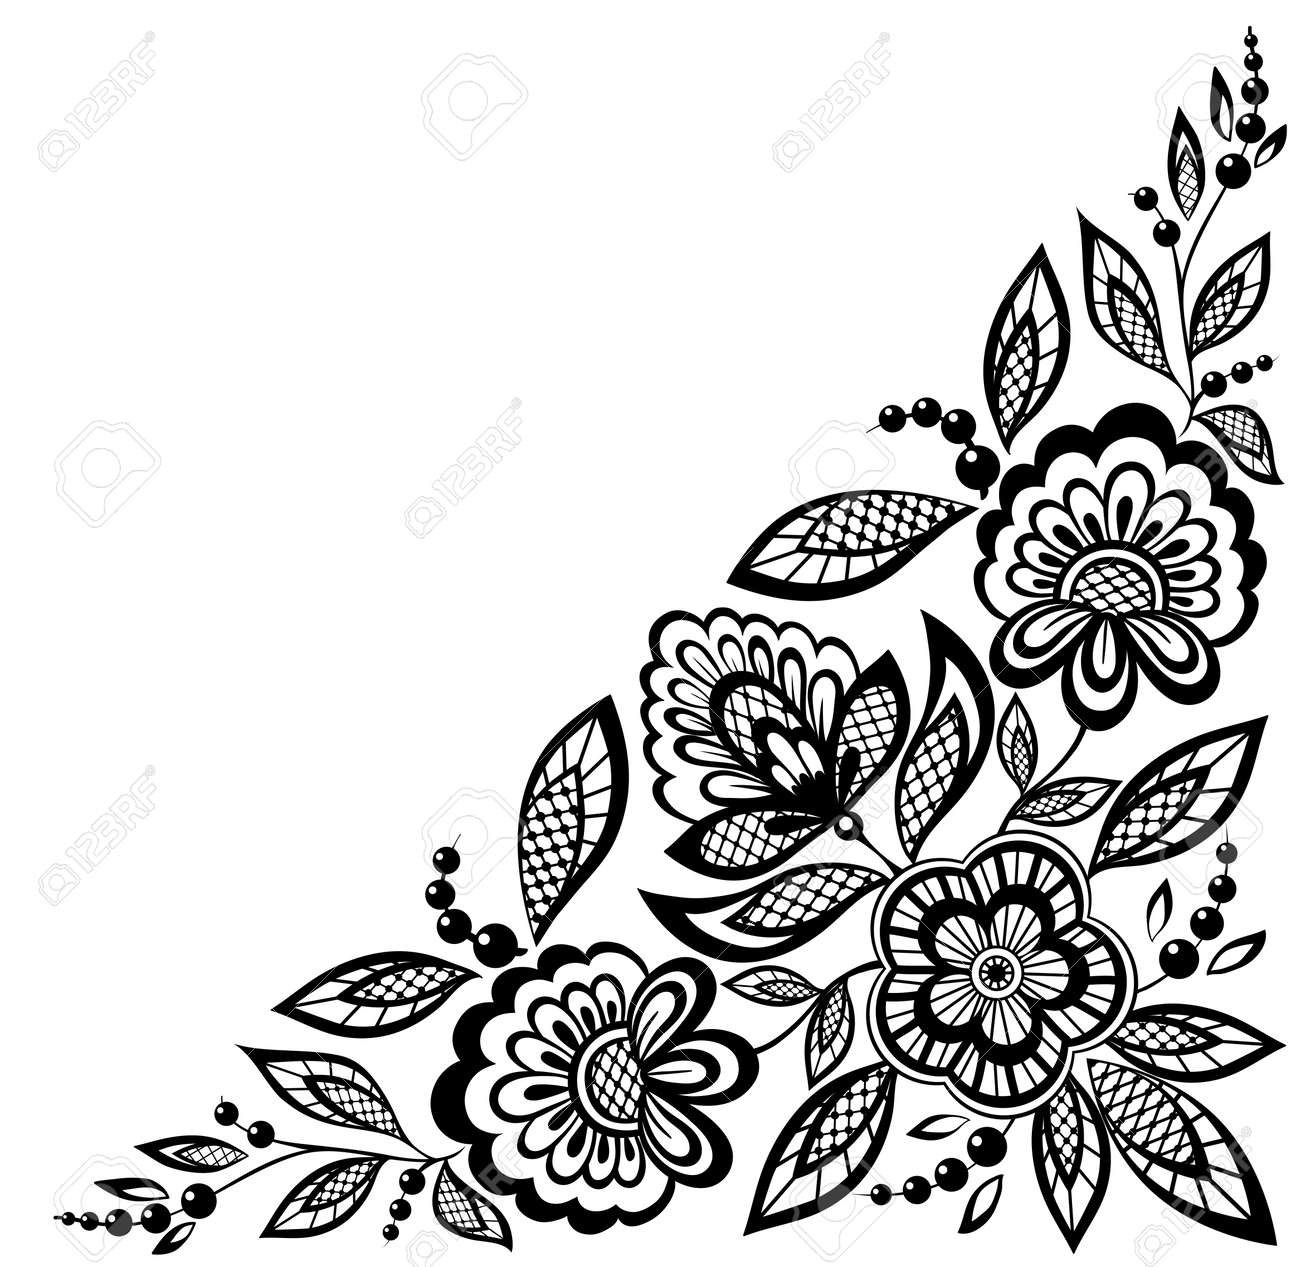 corner ornamental lace flowers are decorated in black and white. Many similarities to the author's profile - 18120346